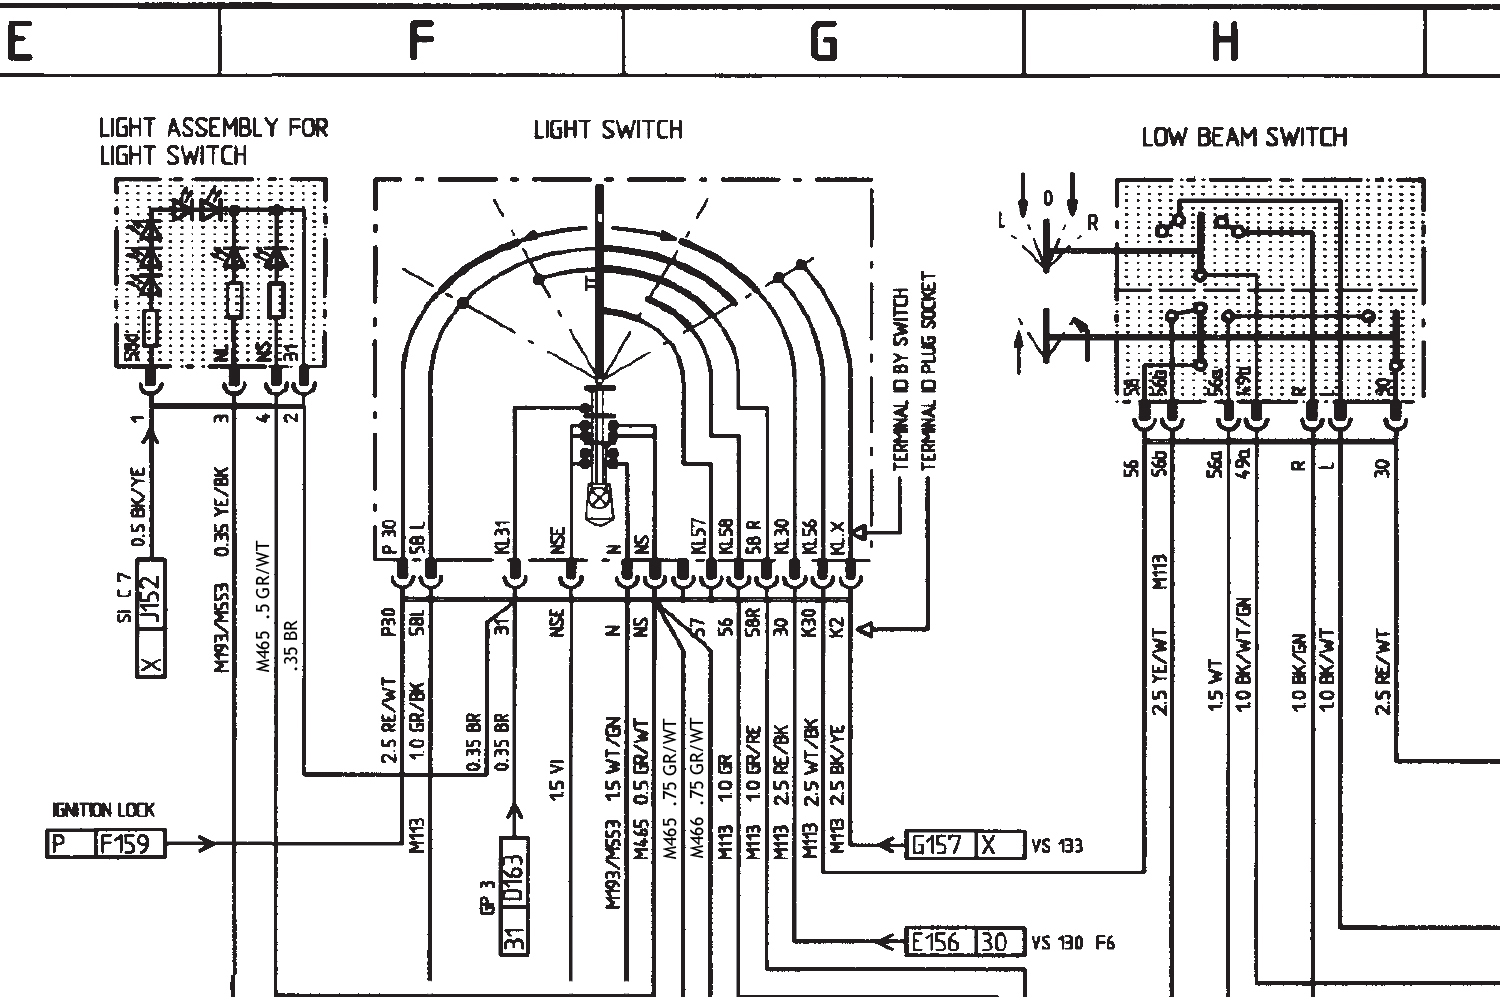 hight resolution of 1987 porsche 944 wiring harness diagram images gallery